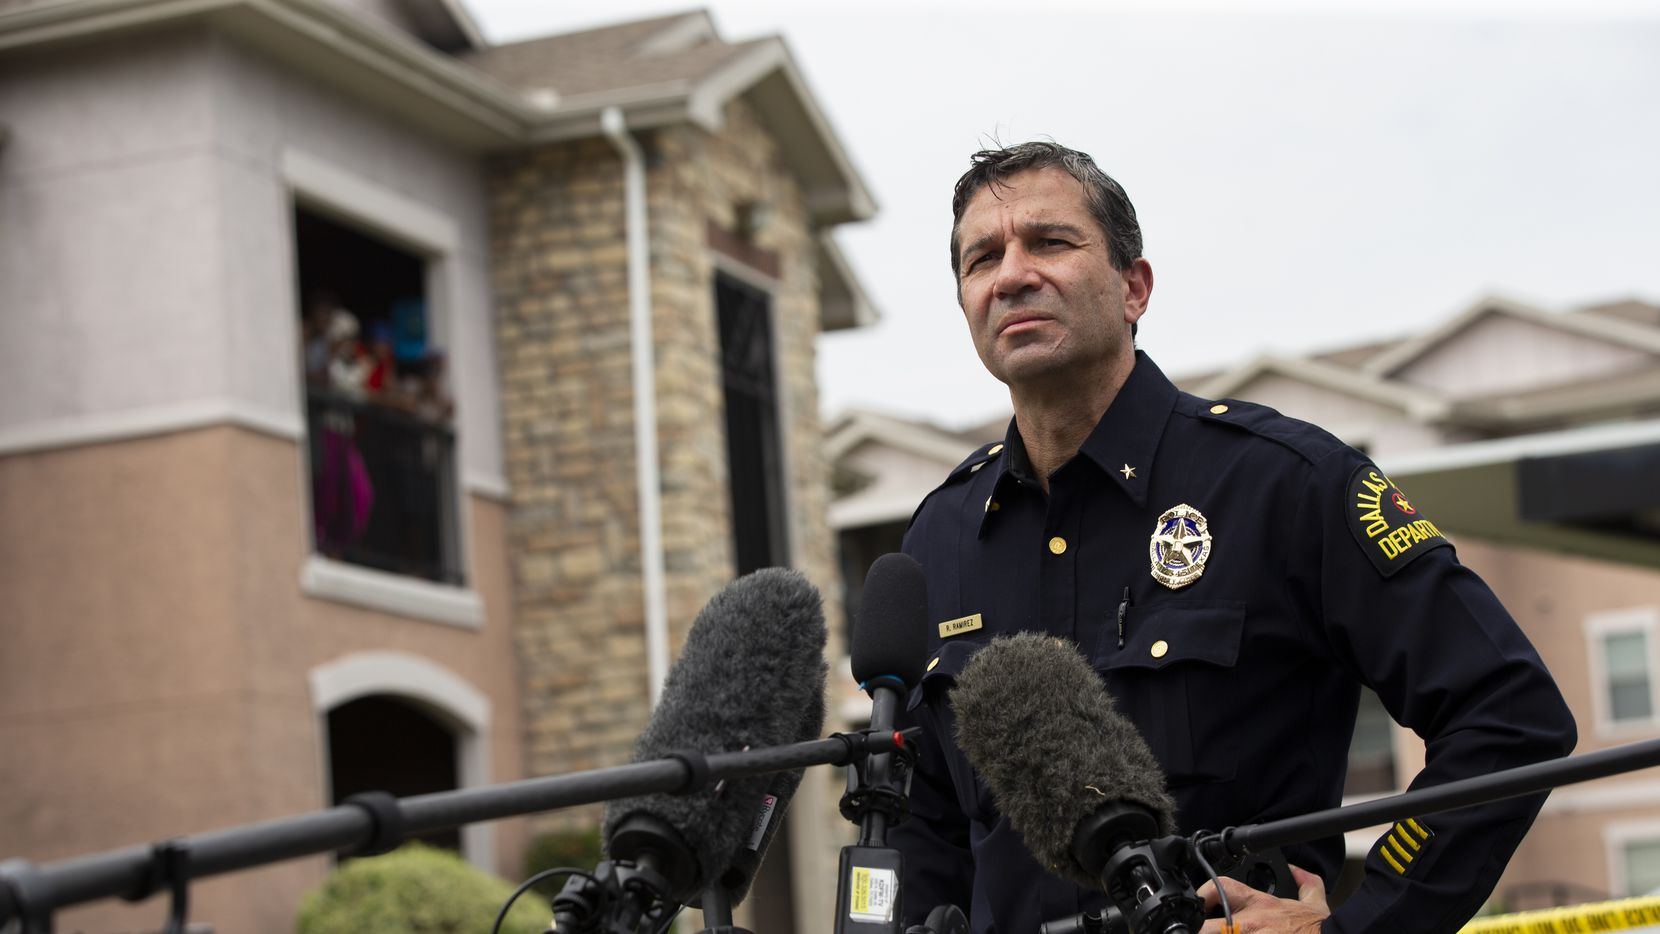 Deputy Chief Reuben Ramirez speaks to the media at the scene of a triple homicide in Dallas on Monday.